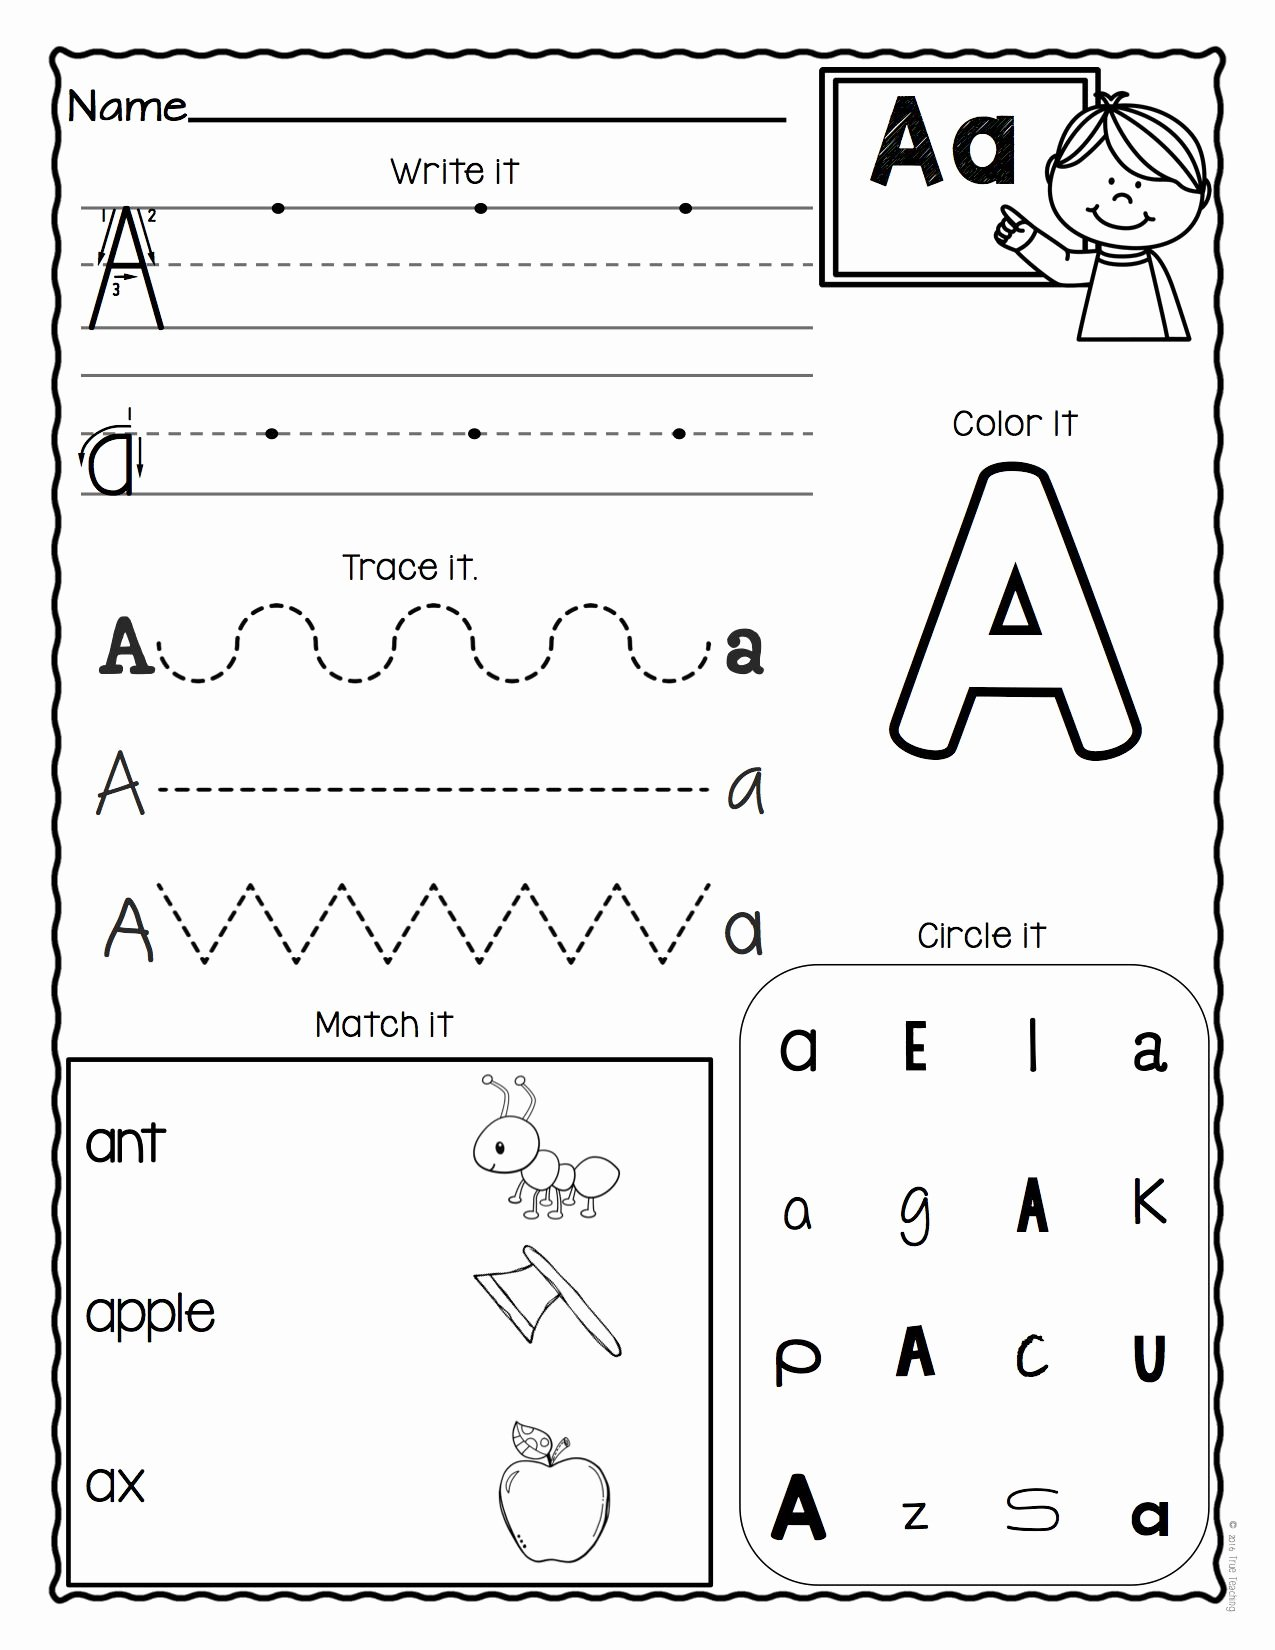 Letter I Worksheets for Preschoolers Fresh A Z Letter Worksheets Set 3